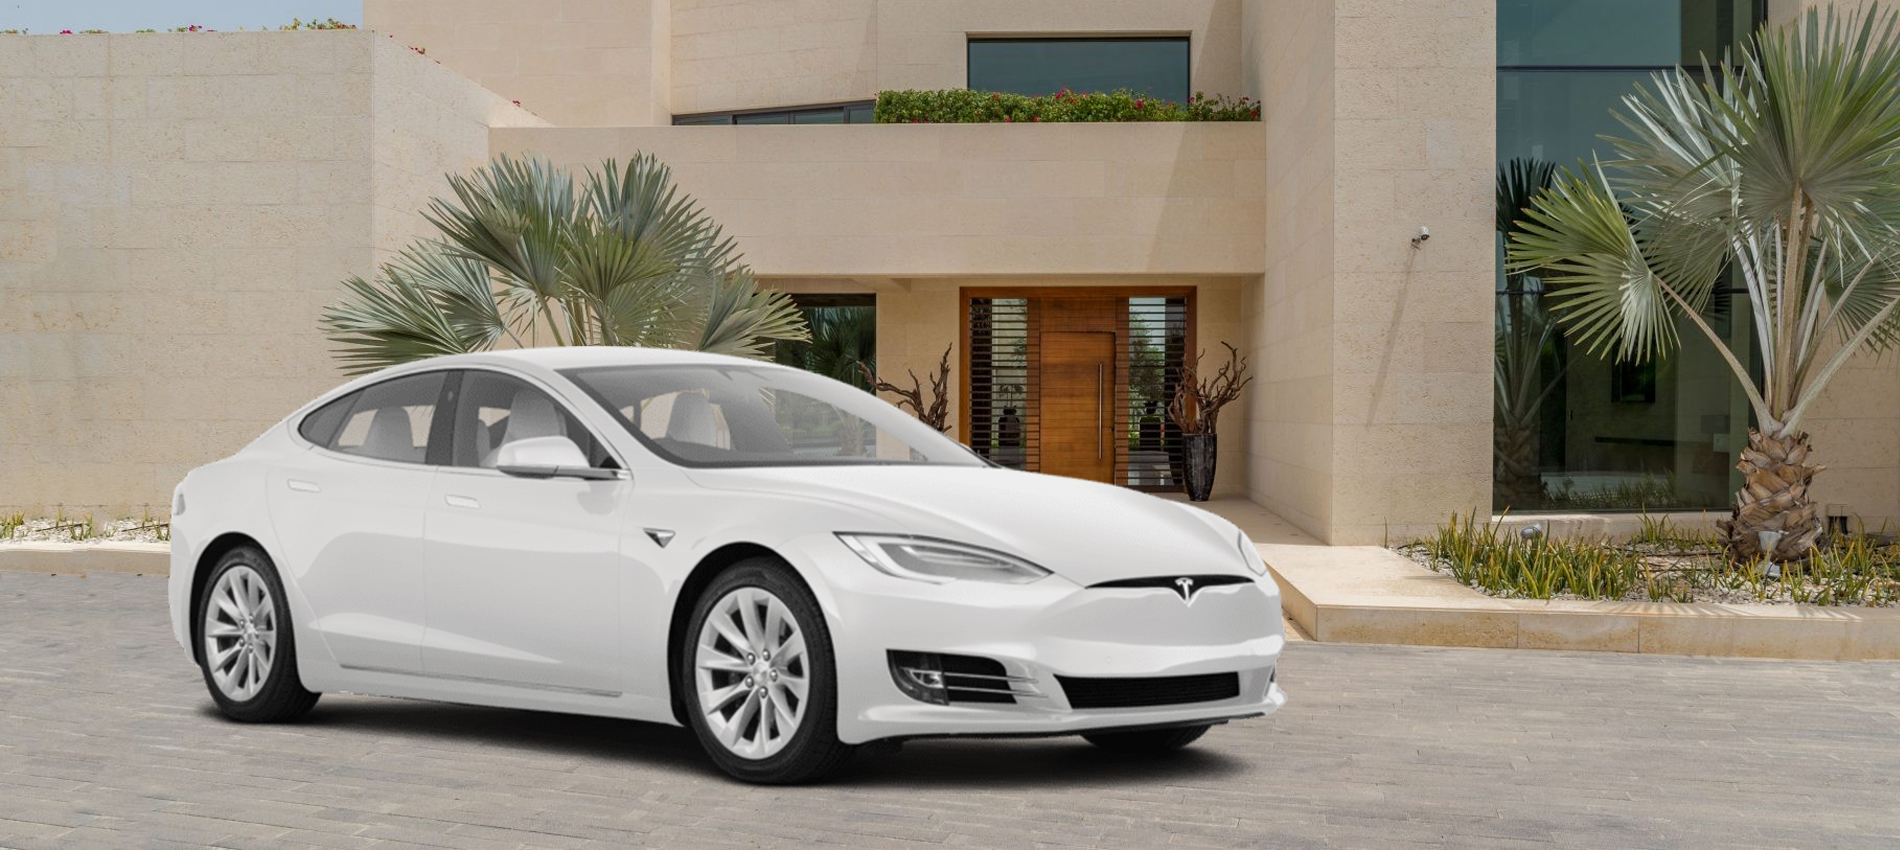 tesla certified collision repair tesla authorized body shop tesla certified collision repair tesla